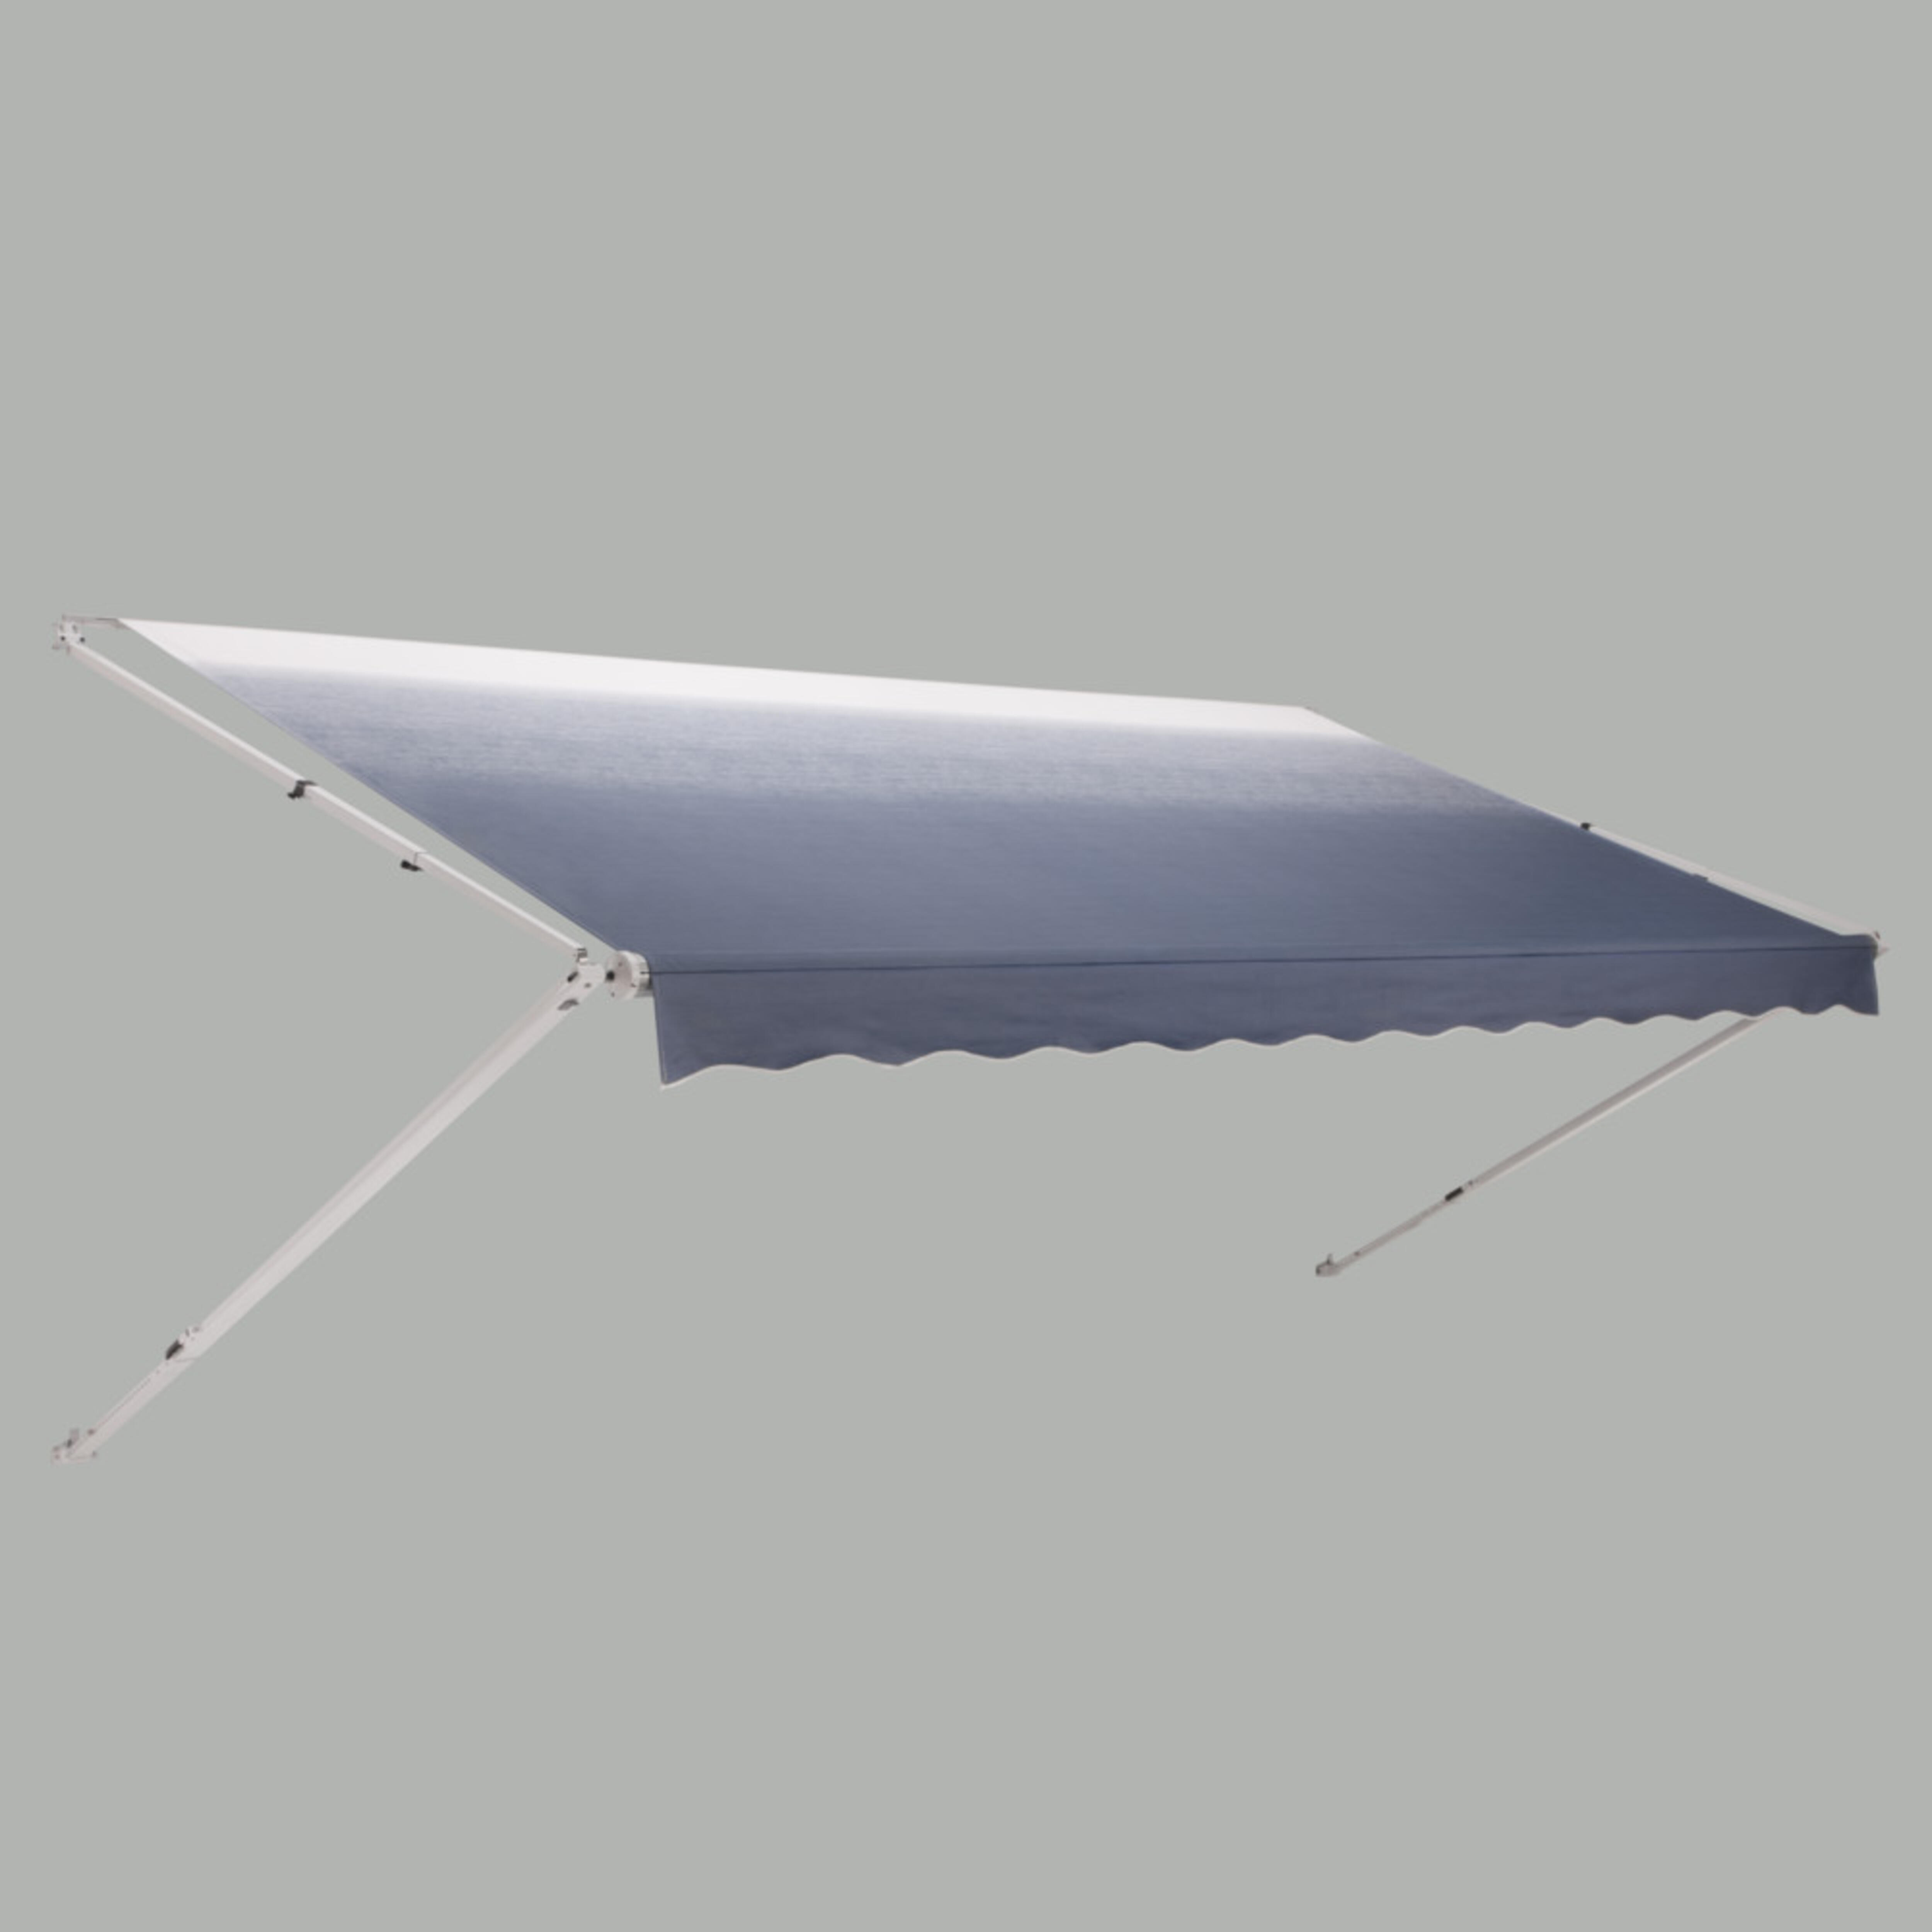 Dometic 8500 GEARED Awning